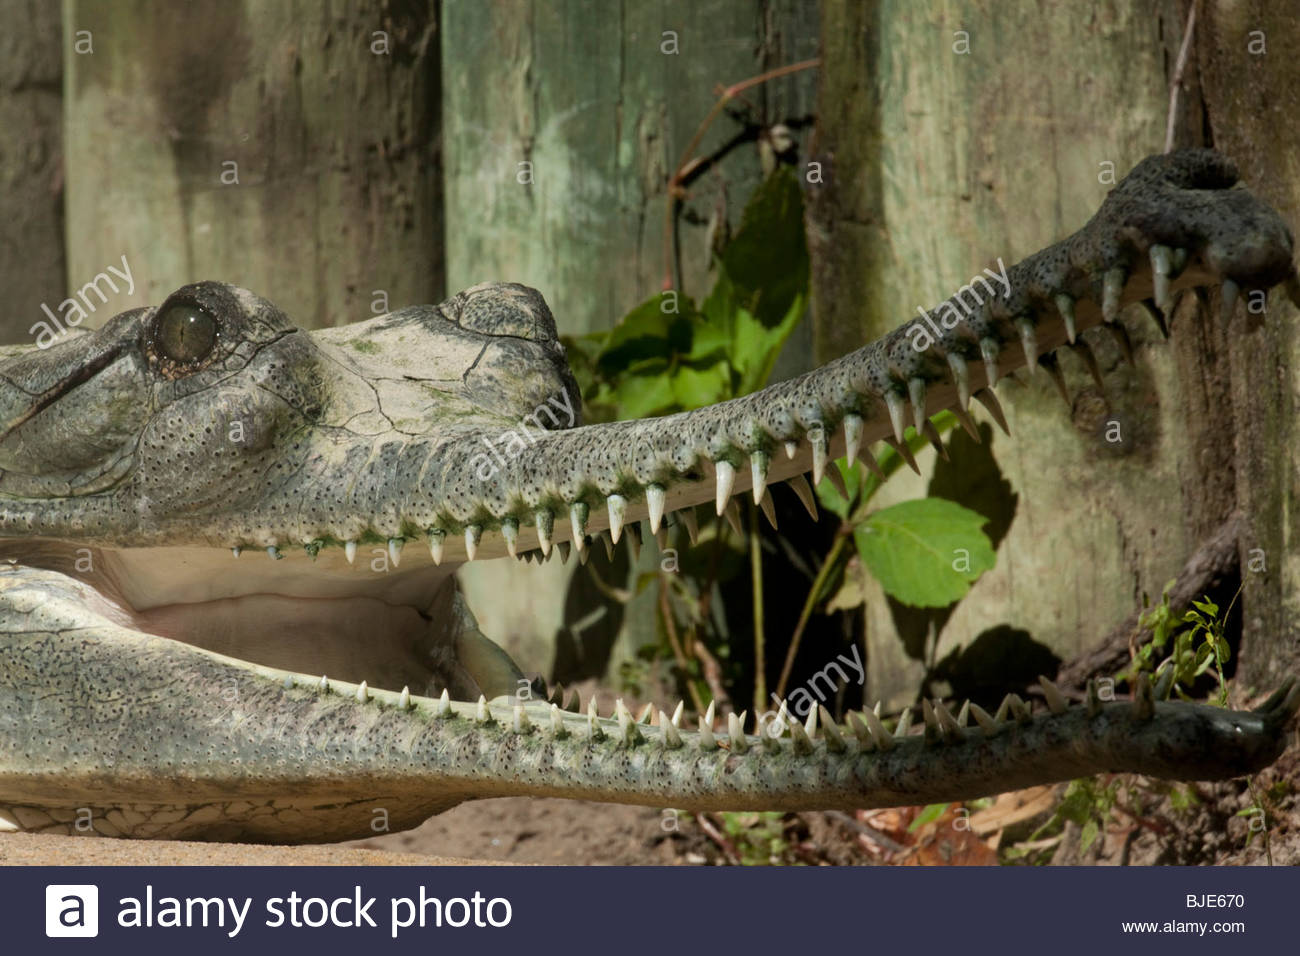 Indian Gharial - Stock Image